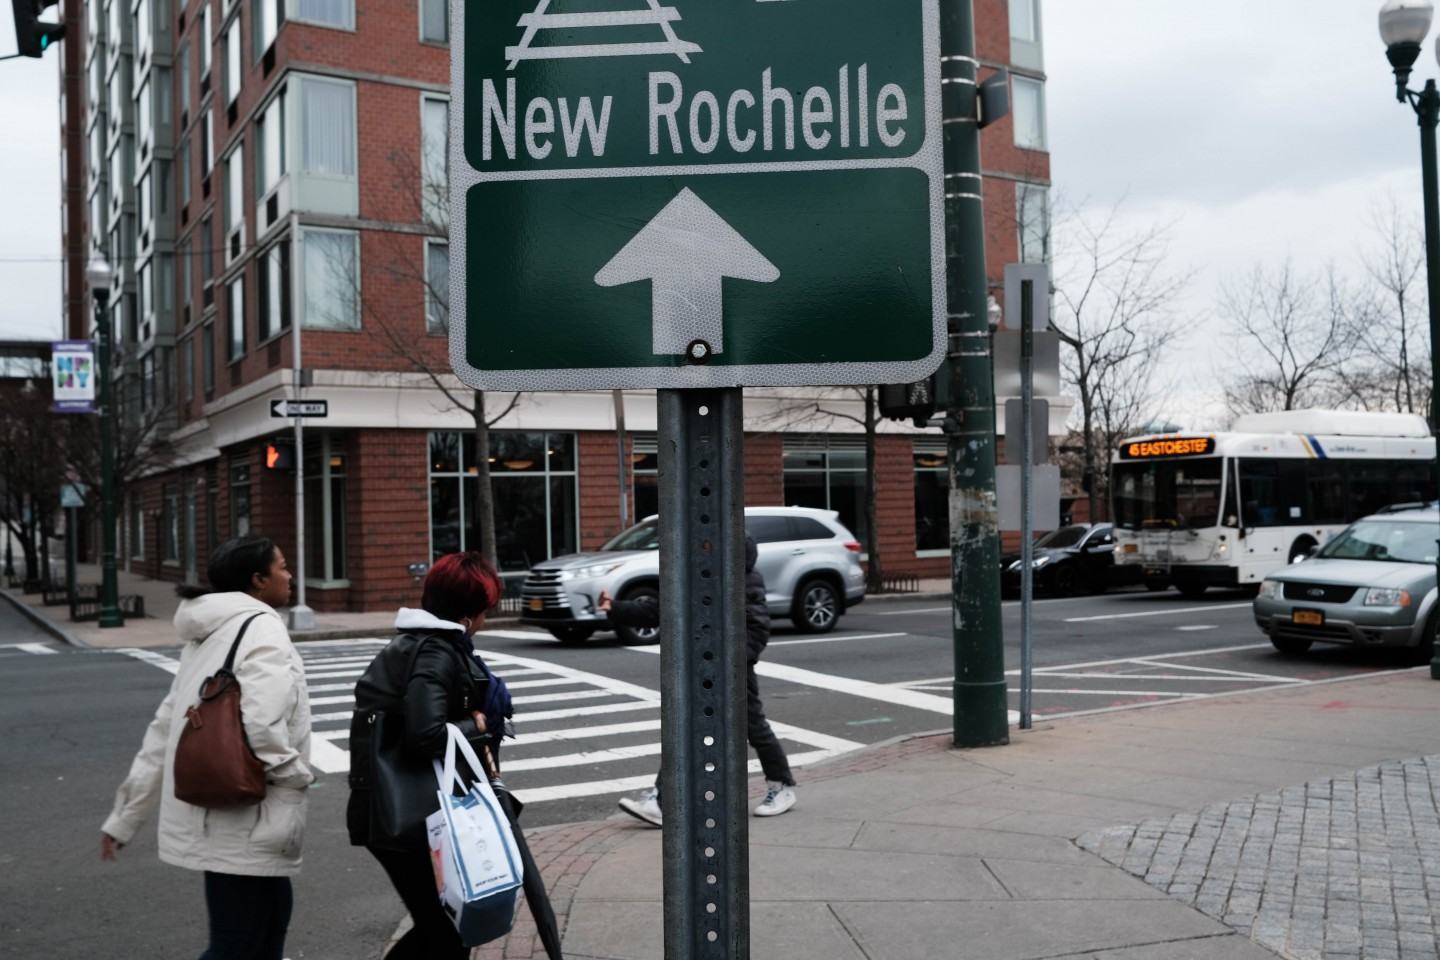 Should Western countries should adopt the lockdown policy? In this photo taken on 10 March 2020, people walk through downtown in New Rochelle, New York. (Spencer Platt/Getty Images/AFP)